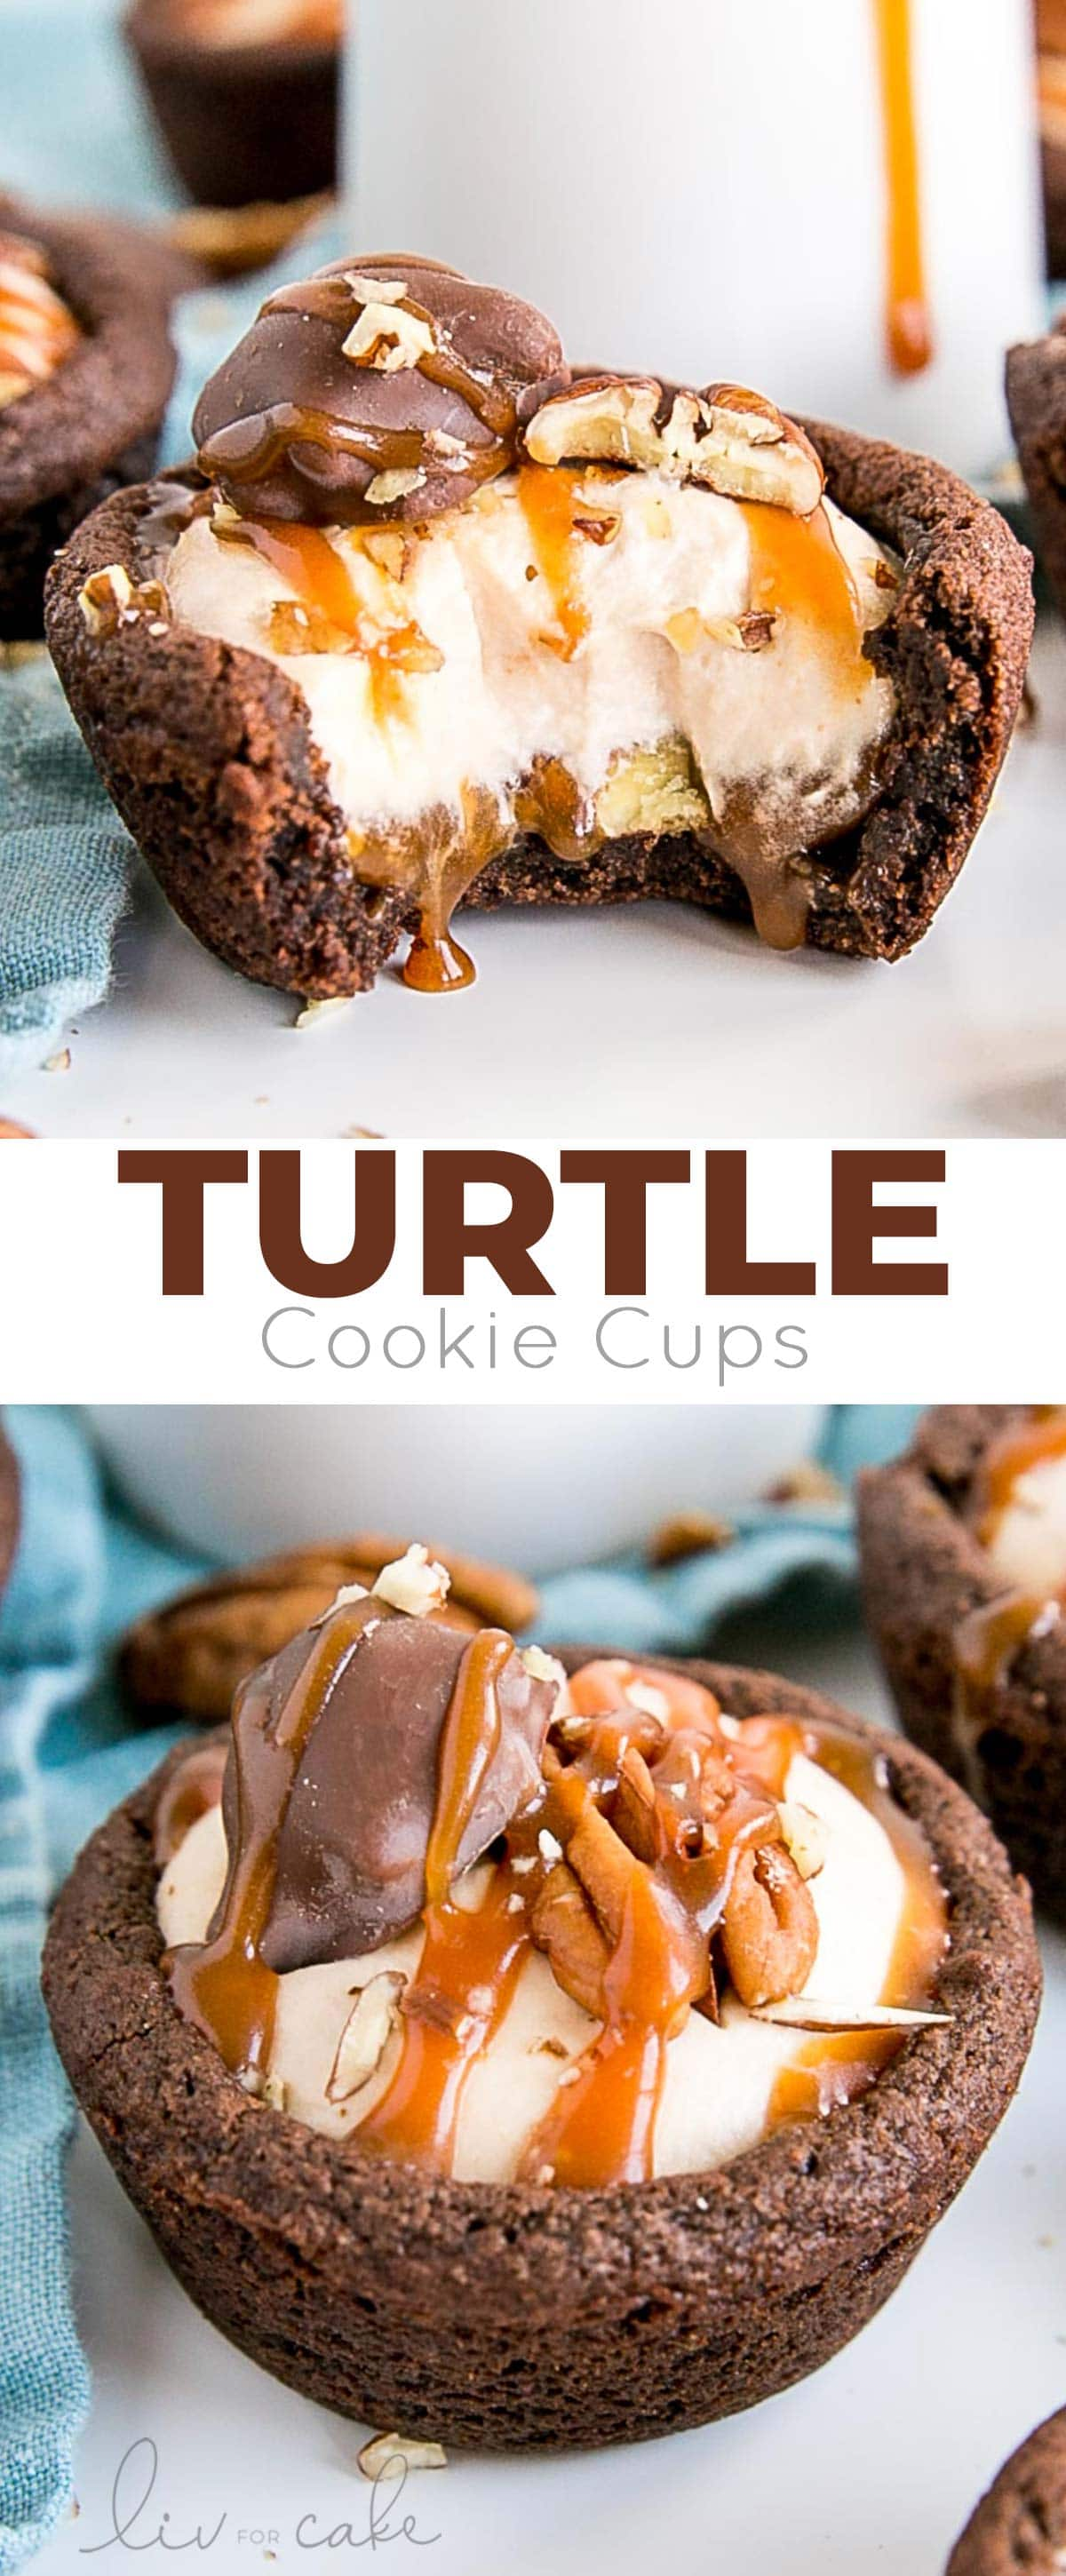 Turtle Cookie Cups collage